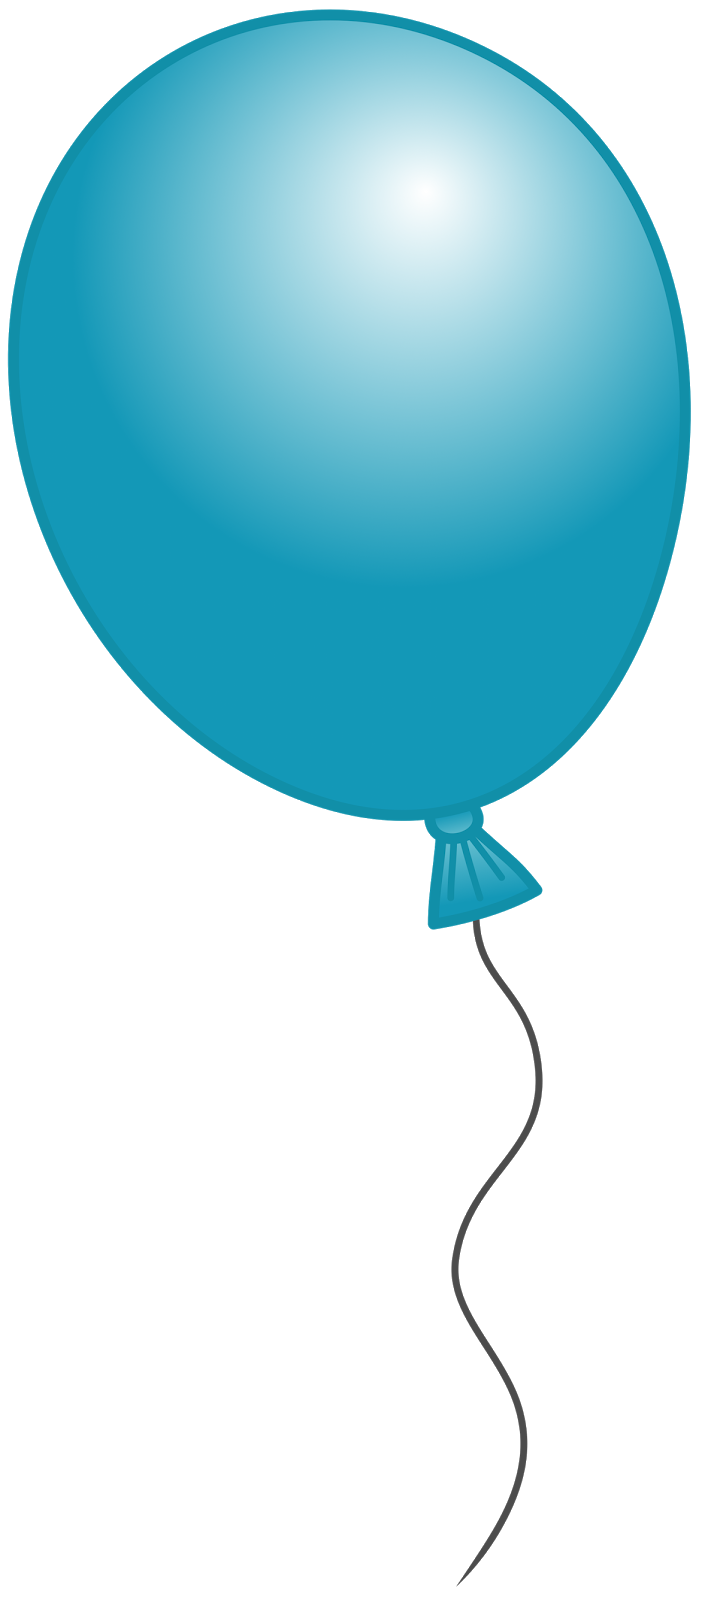 clipart balloons png - photo #36